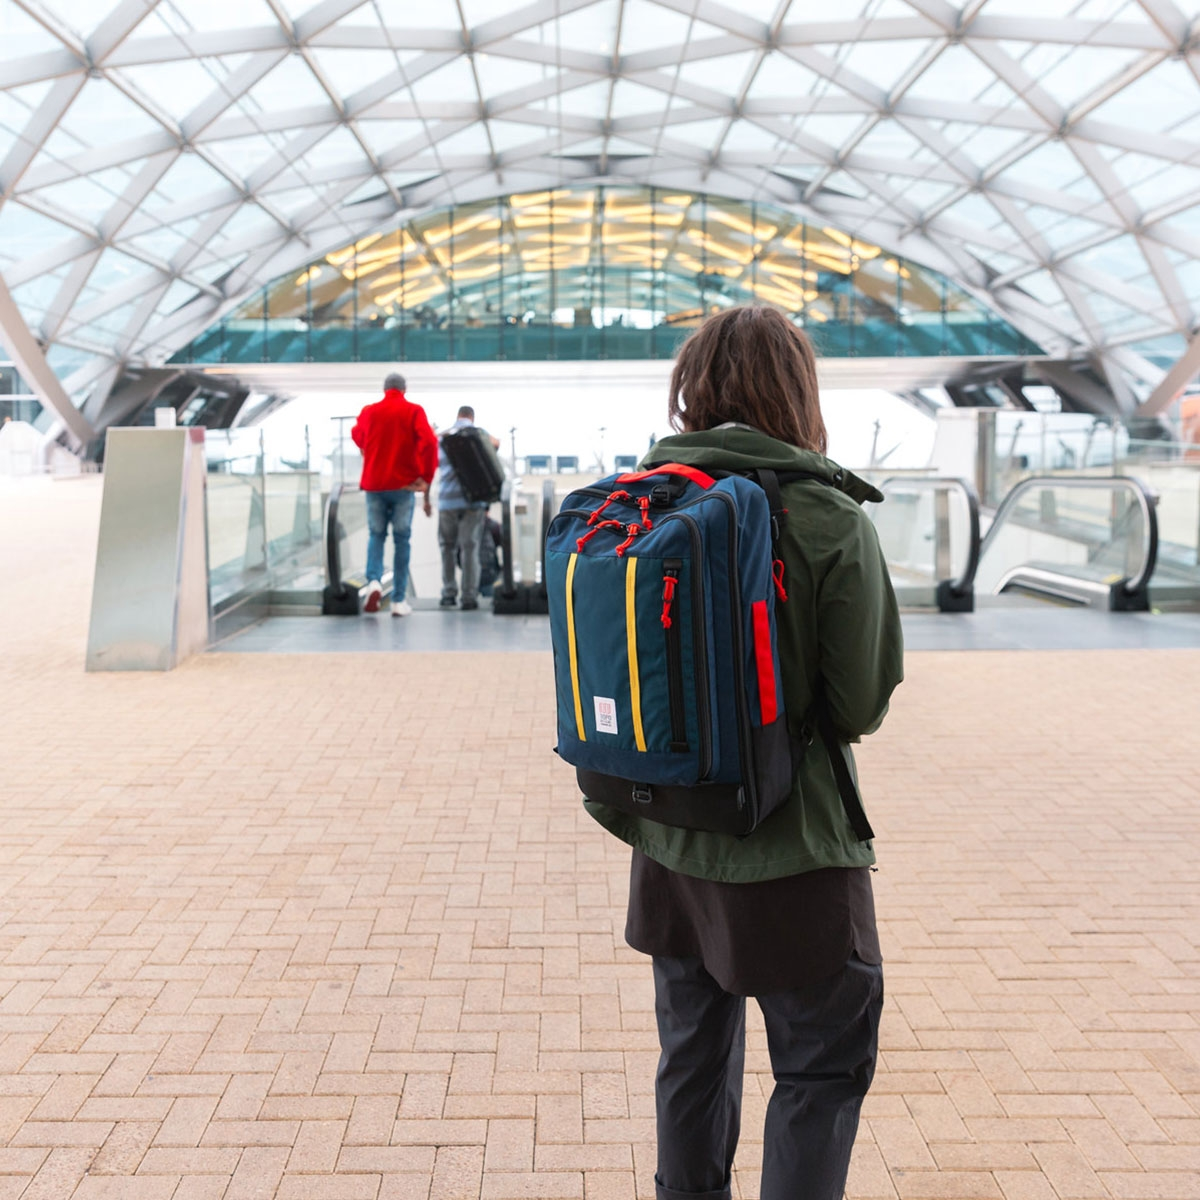 Topo Designs Travel Bag, the most versatile travel bag